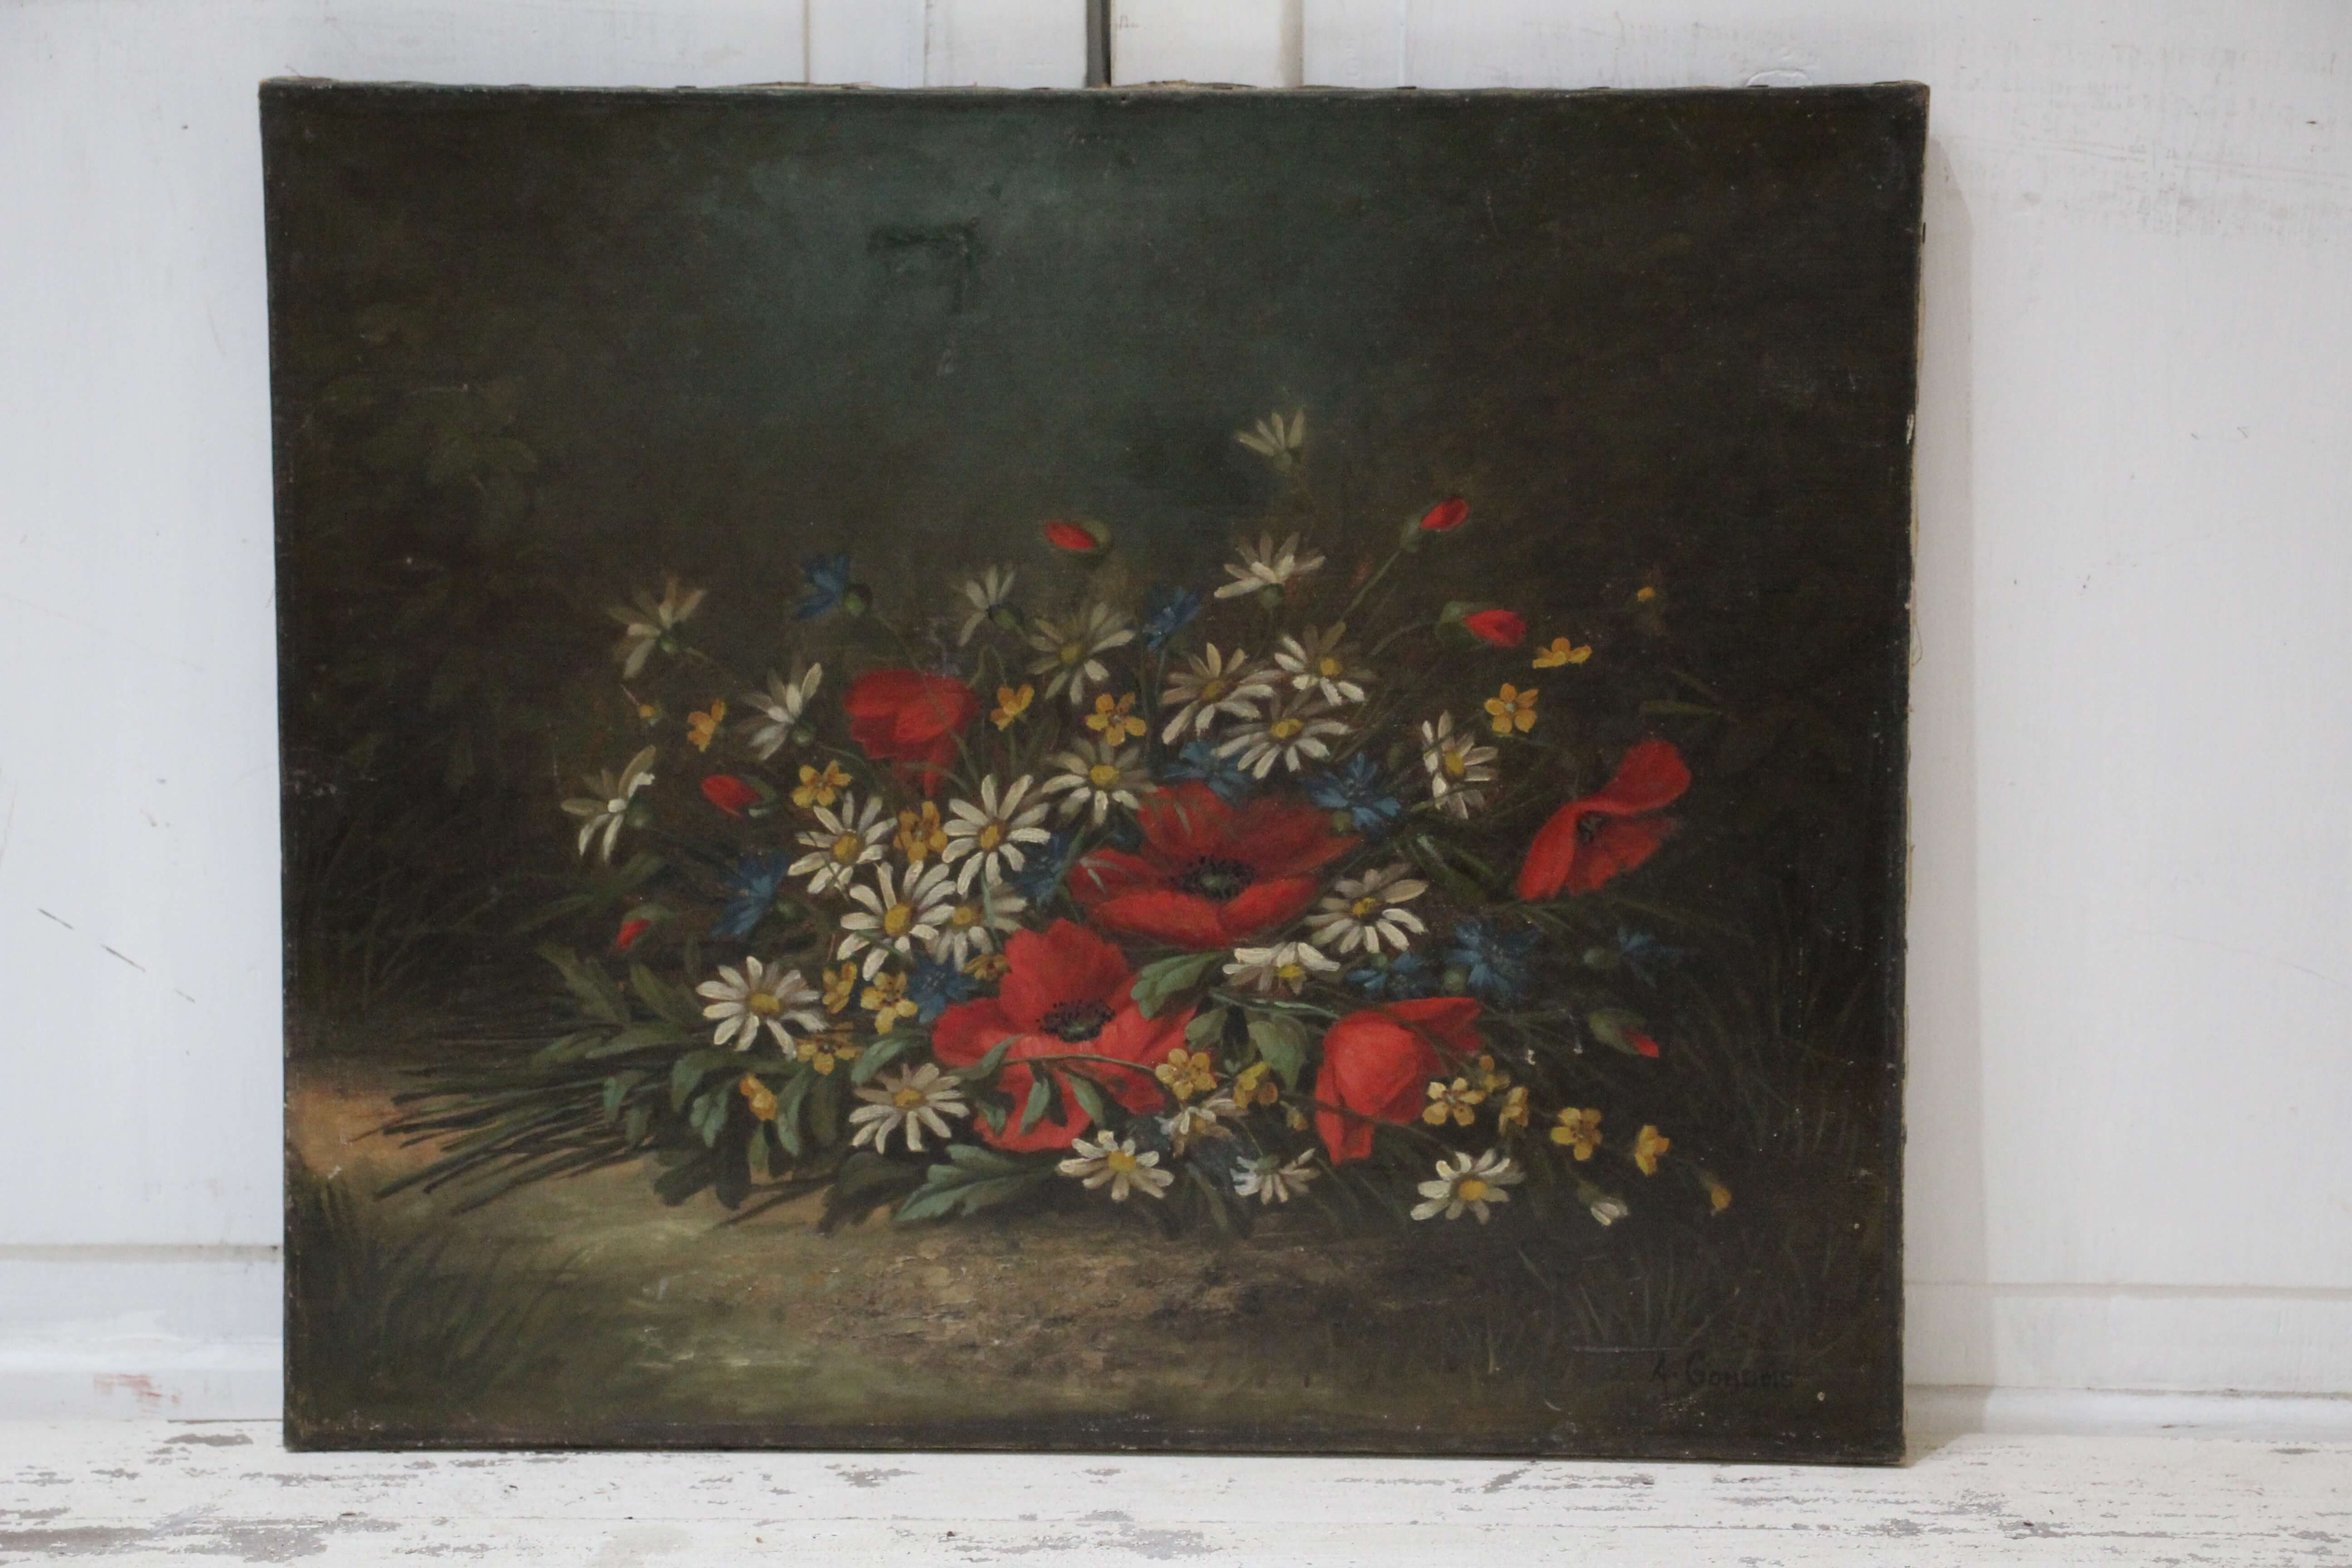 Floral Oil Painting of Poppies and Daisies